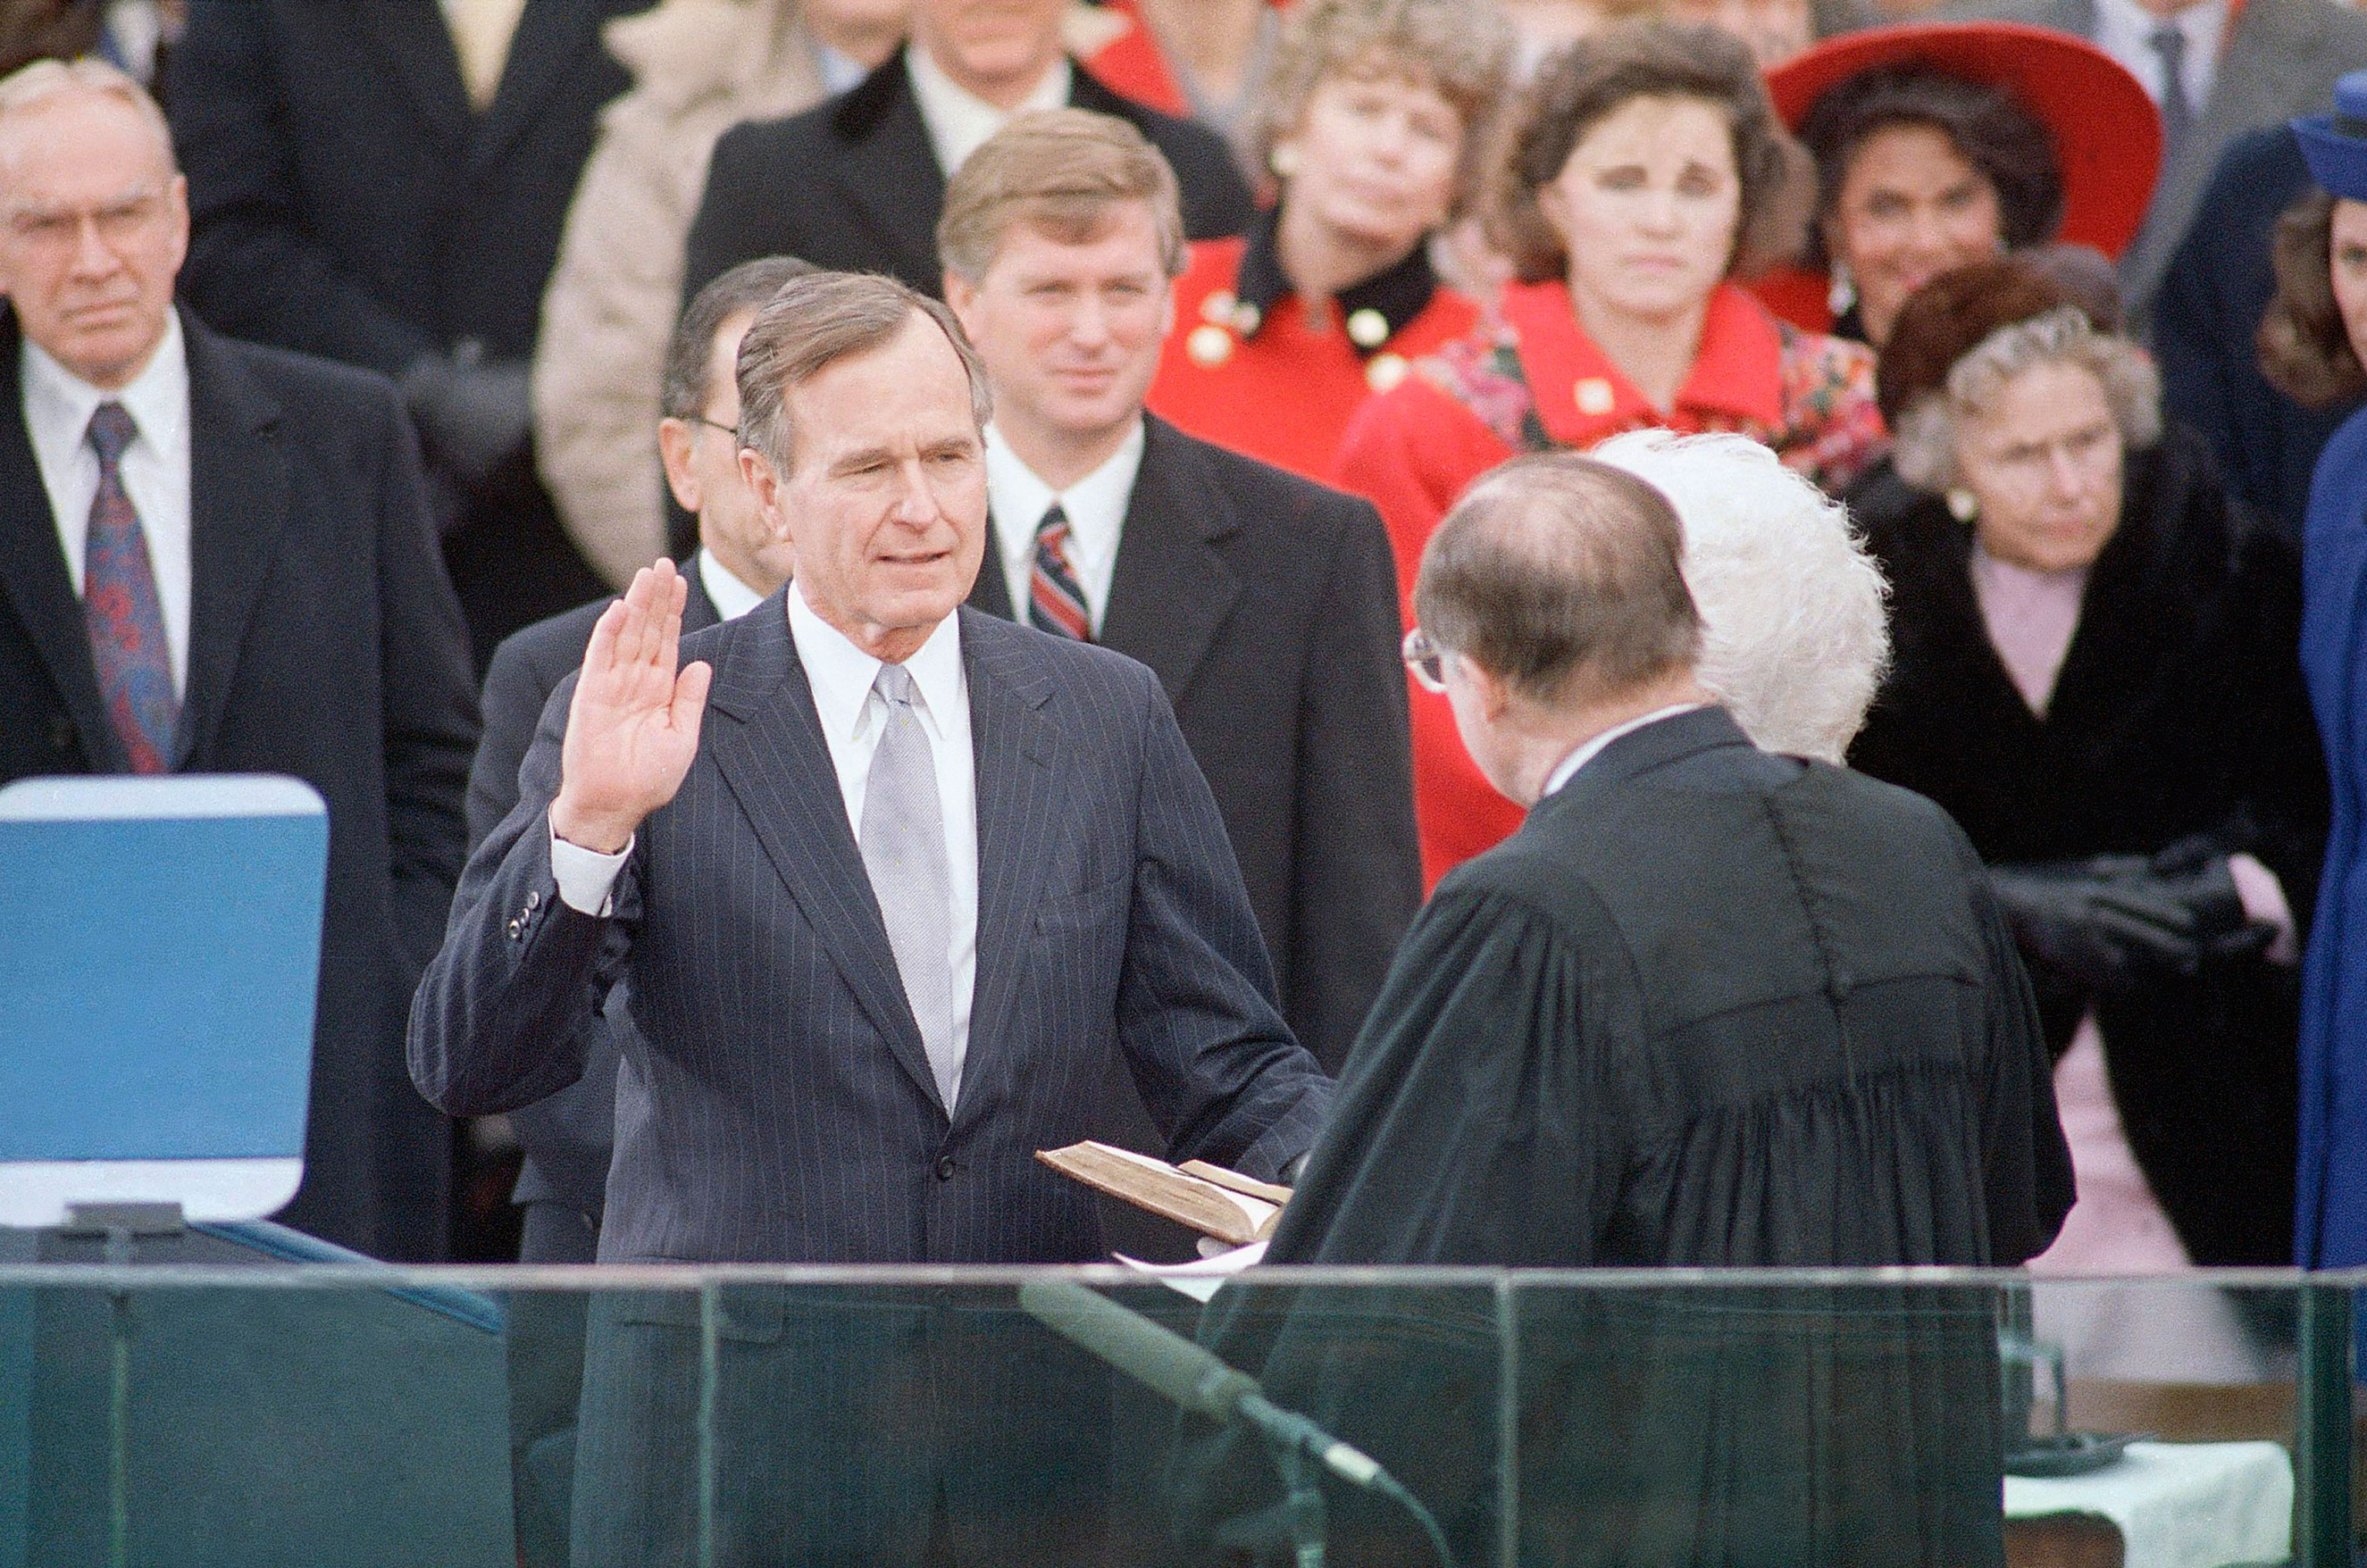 President George H. W. Bush raises his hand as he takes the oath of office as President of the United States outside the Capitol on Jan. 20, 1989, Washington, D.C.